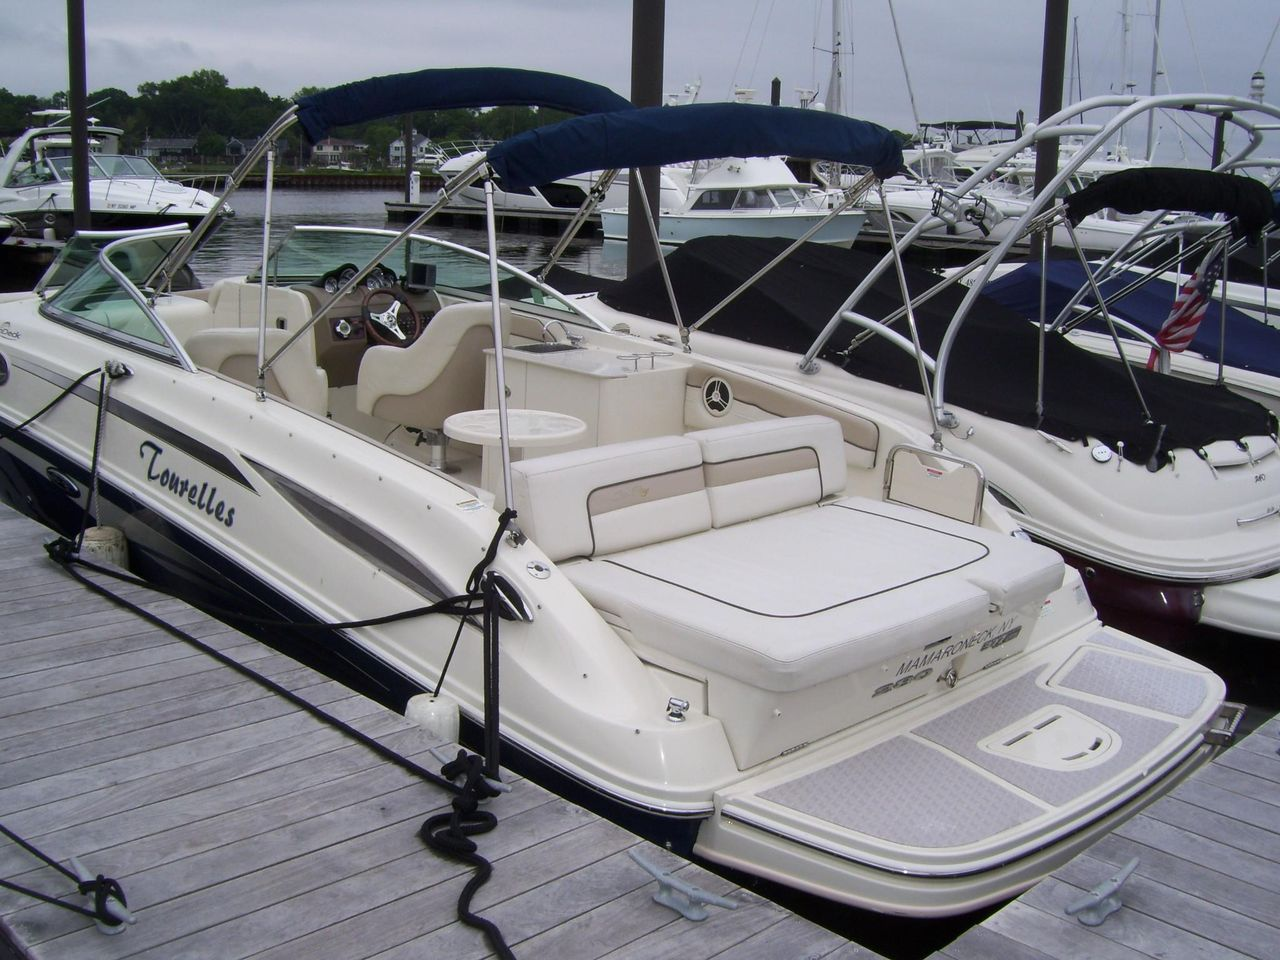 2009 Used Sea Ray 280 Sundeck Bowrider Boat For Sale